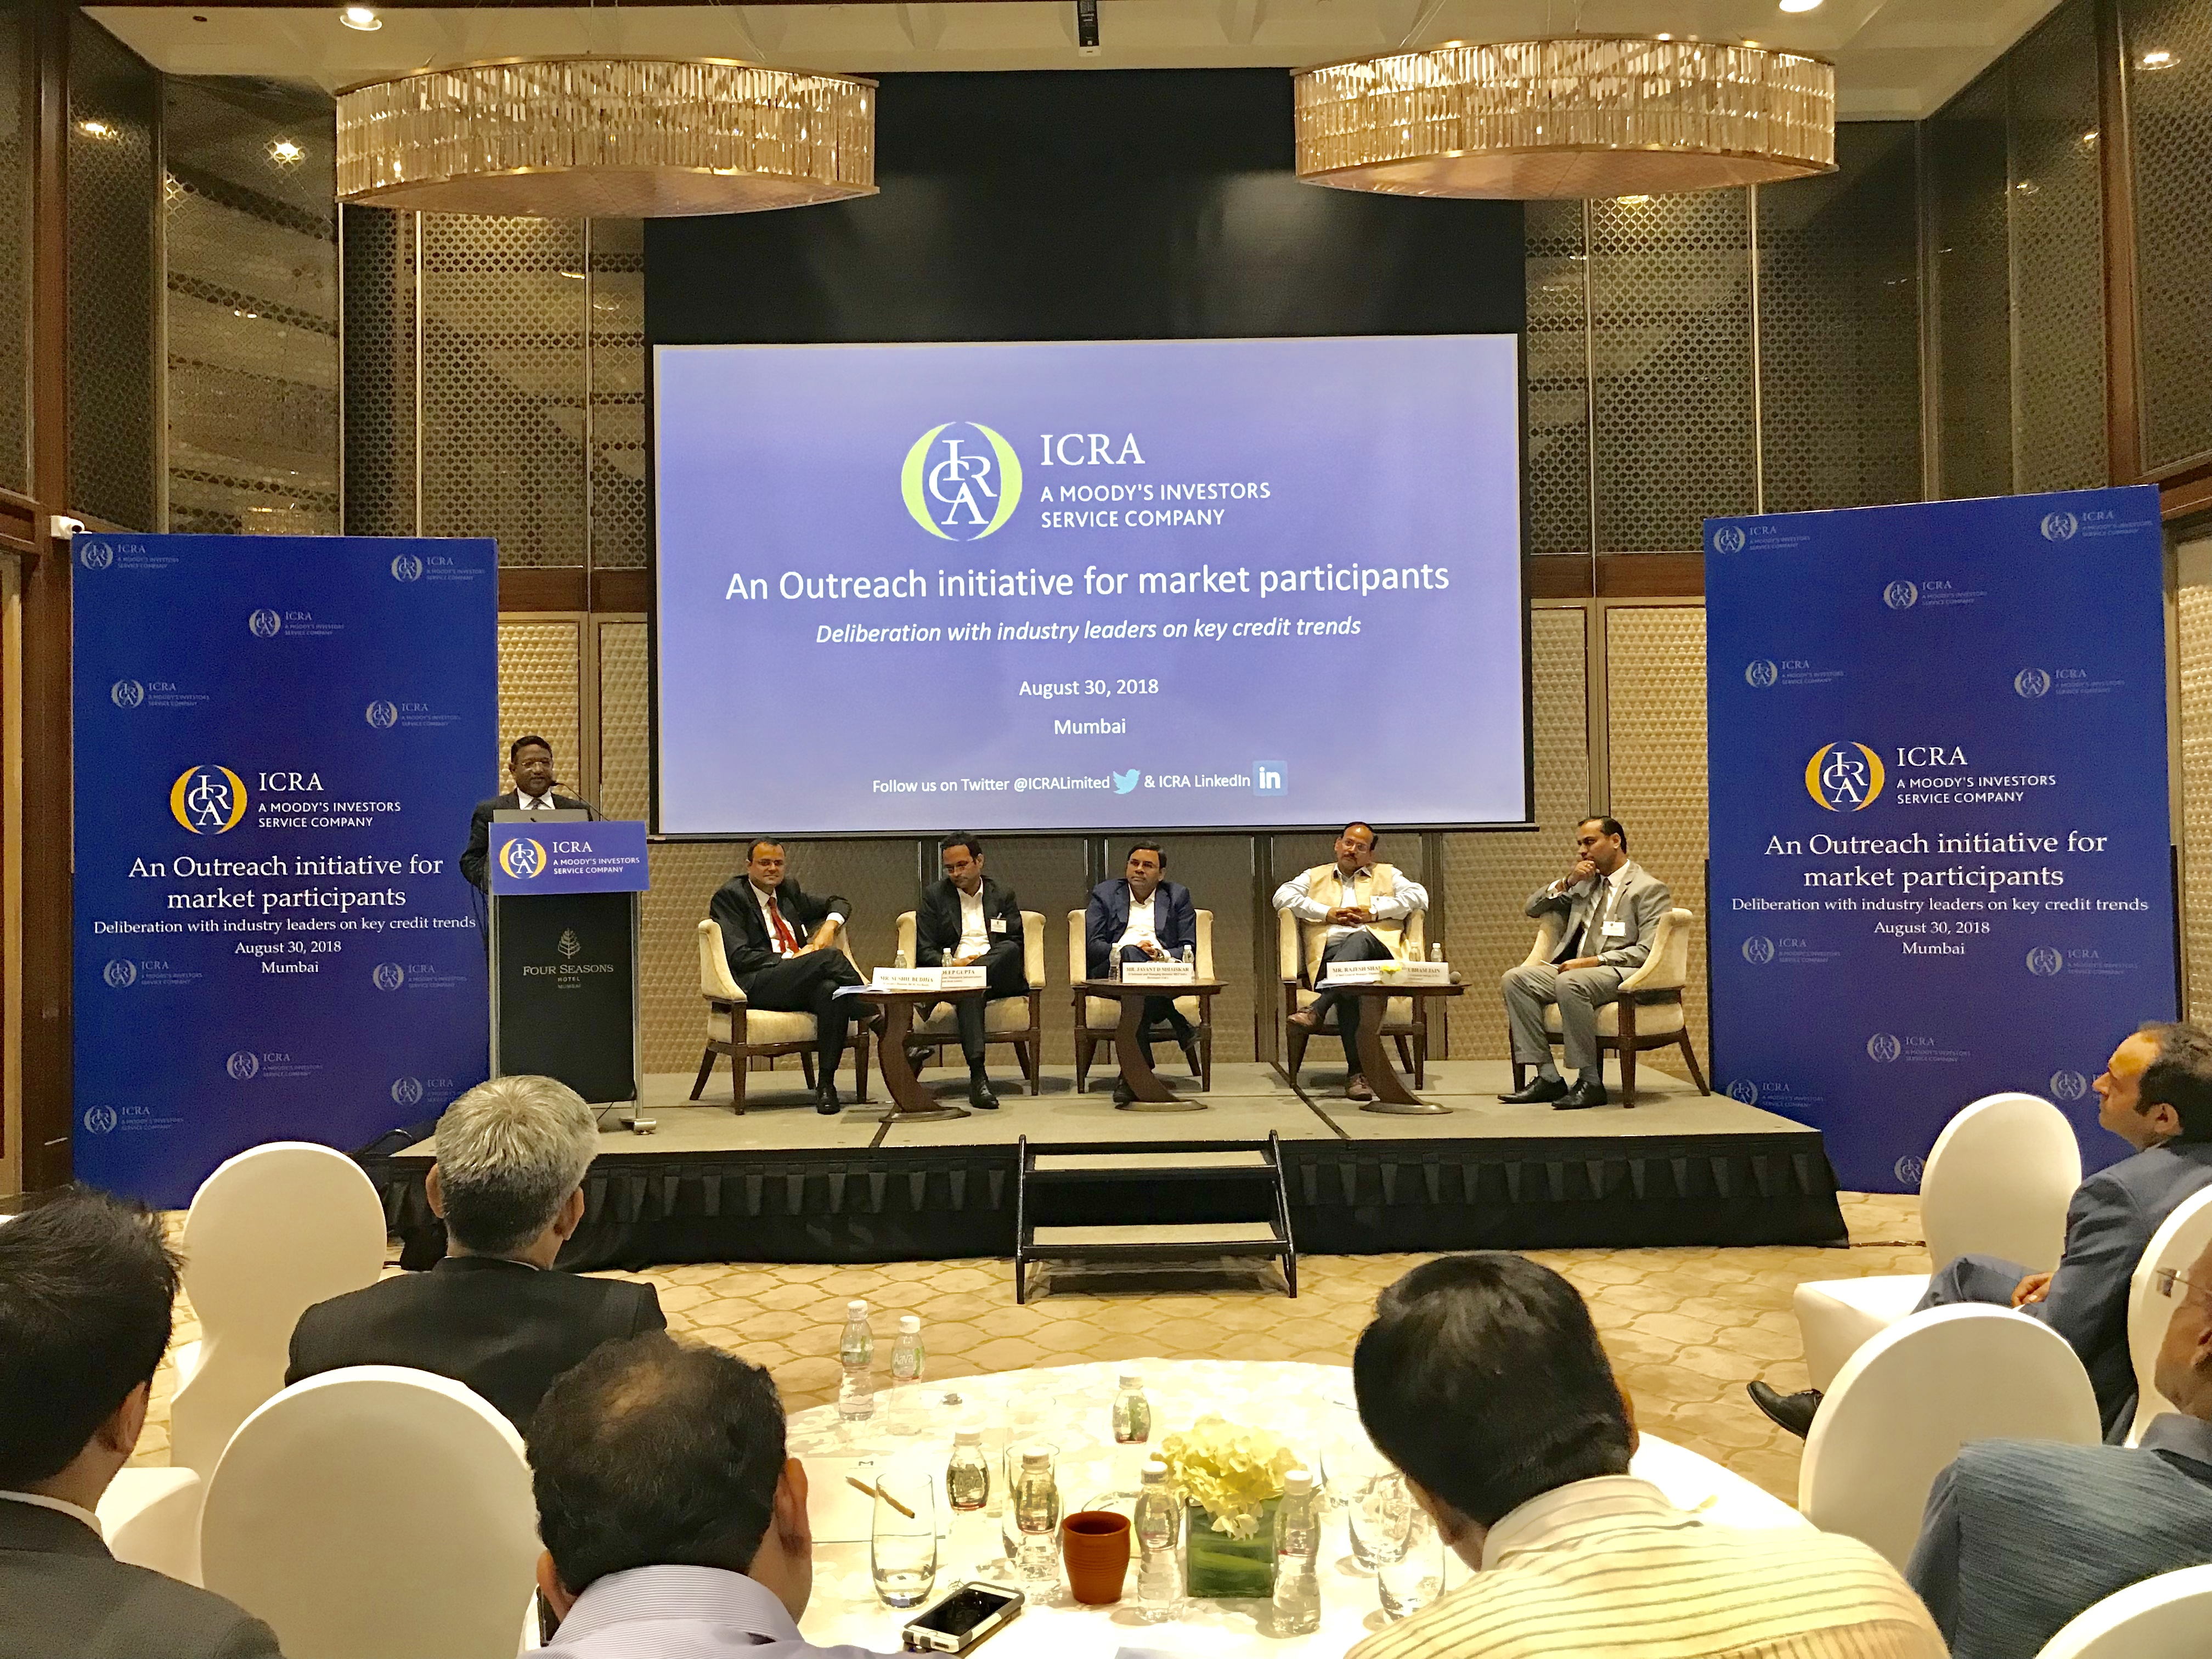 Closing remarks by Mr. L Shivakumar, Executive Vice-President & Head Institutional Corporate Group, ICRA.